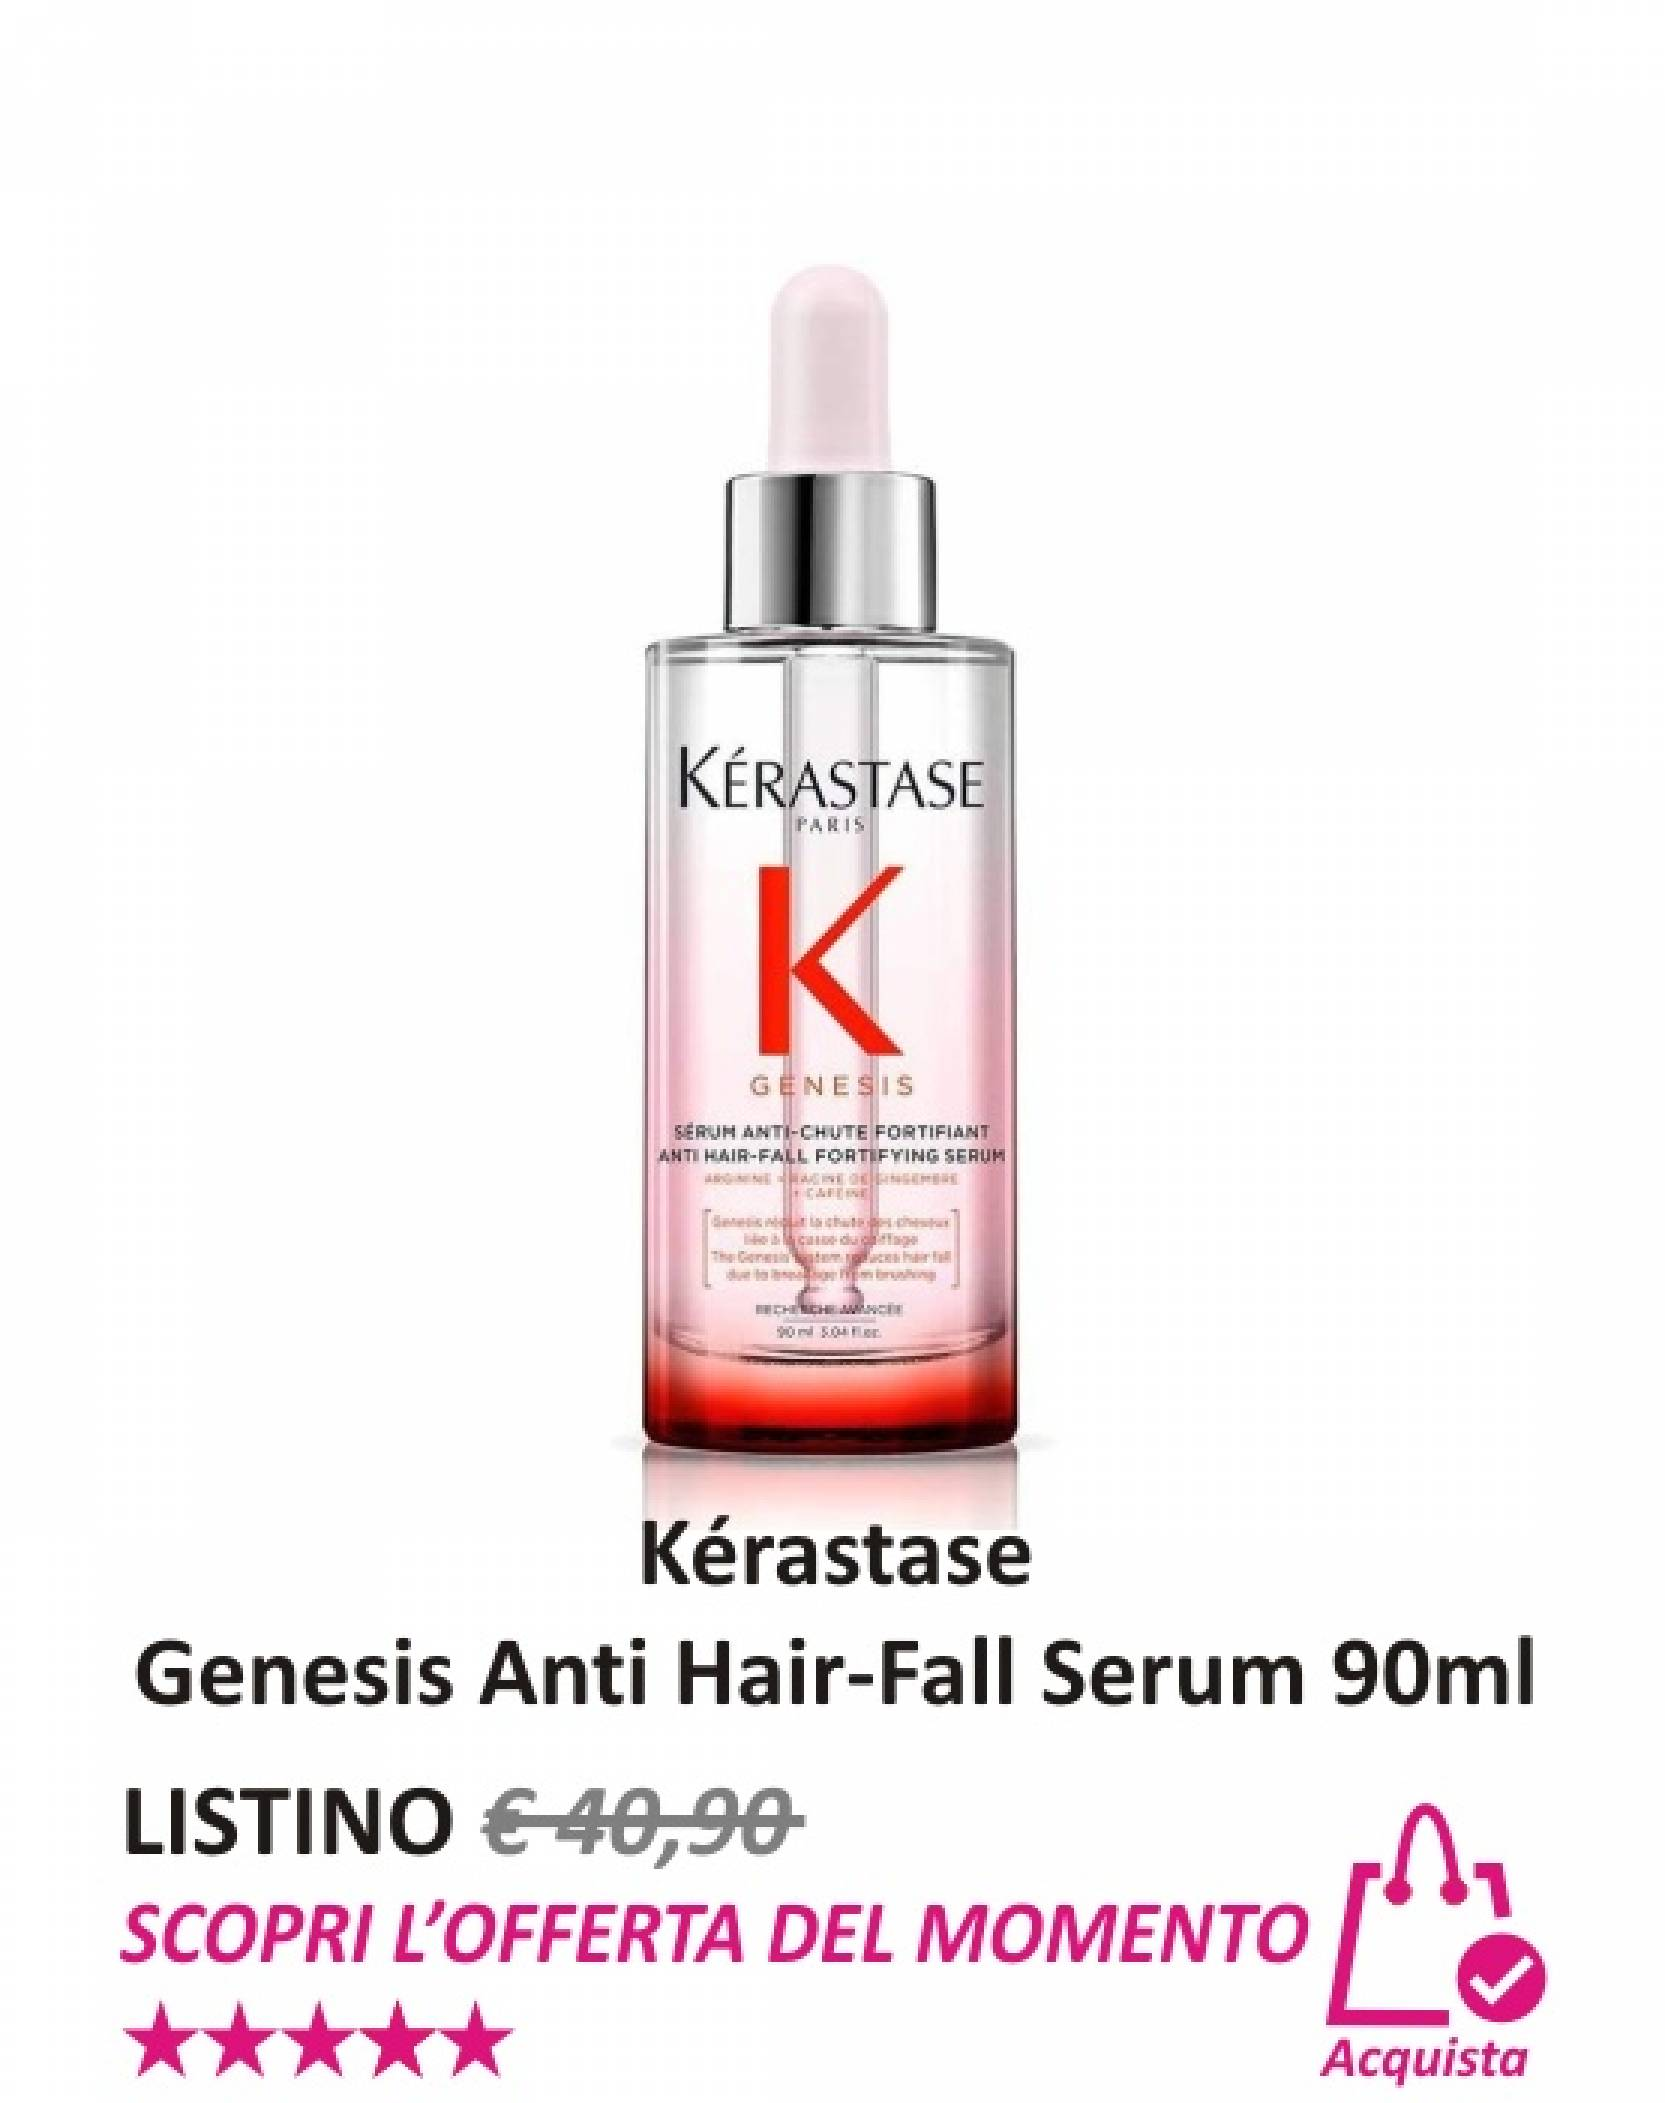 Kérastase Genesis Anti Hair-Fall Serum 90 ml